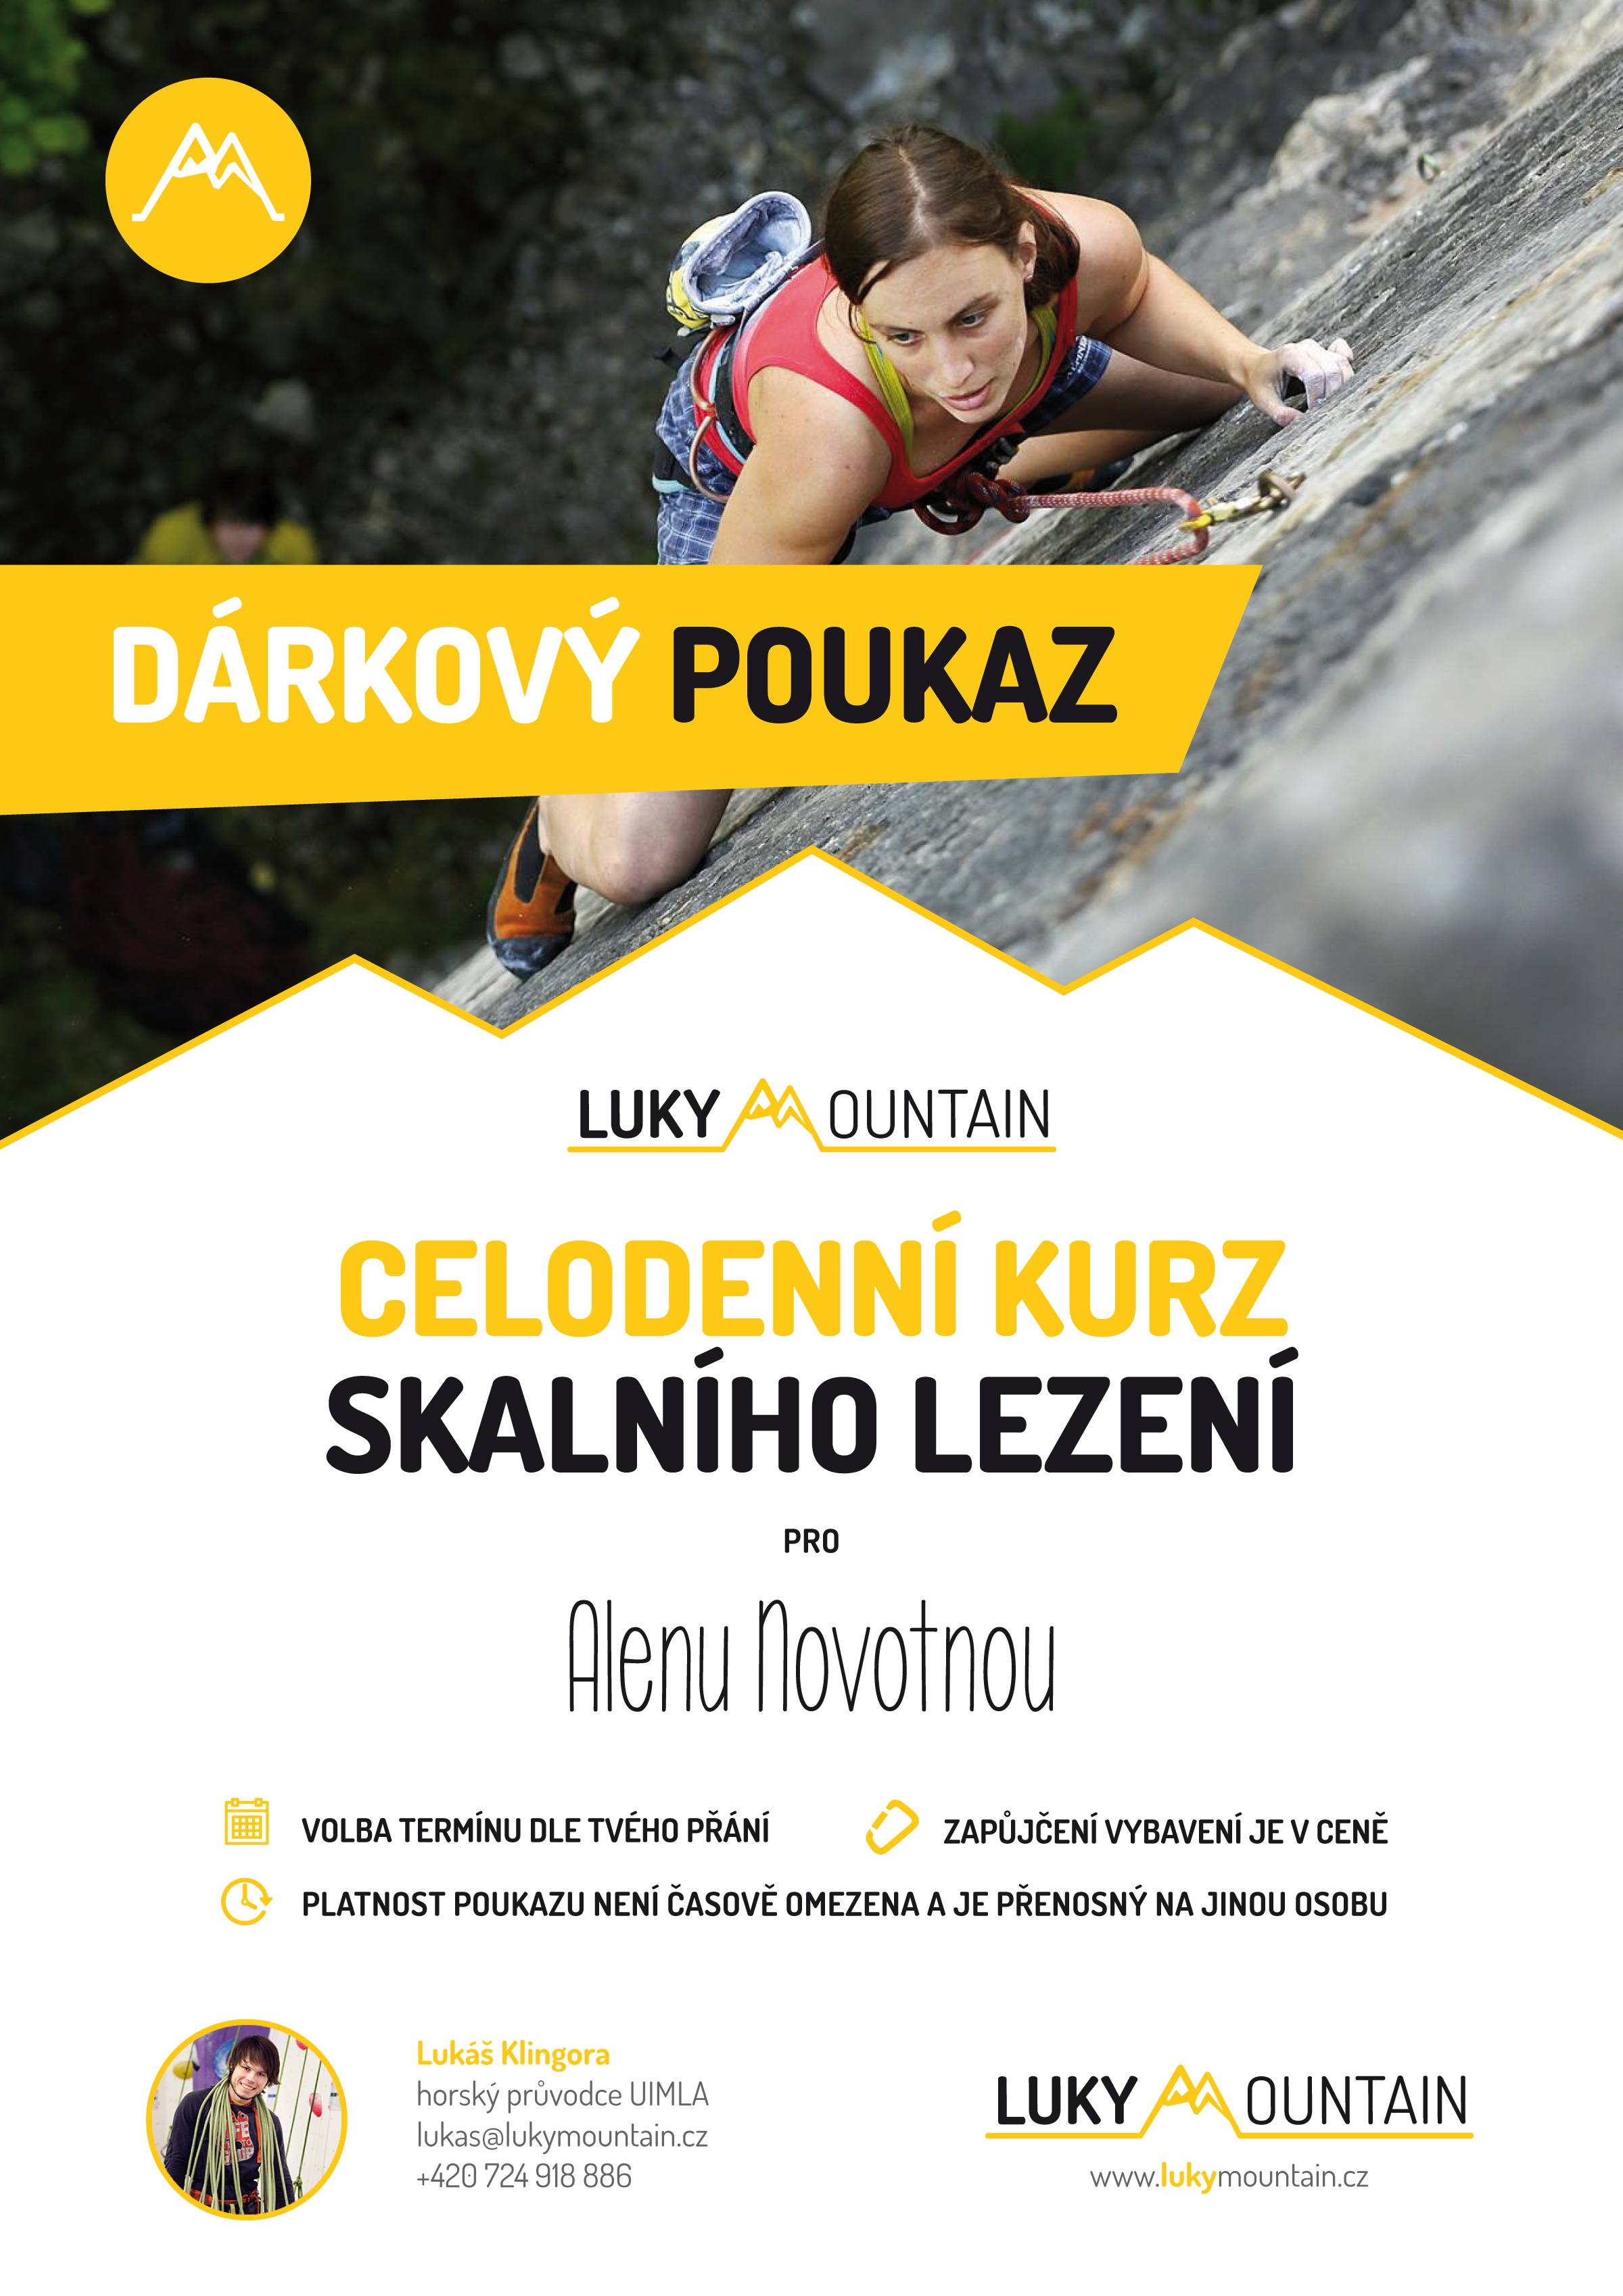 lukymountain-poukazy-skaly-sample